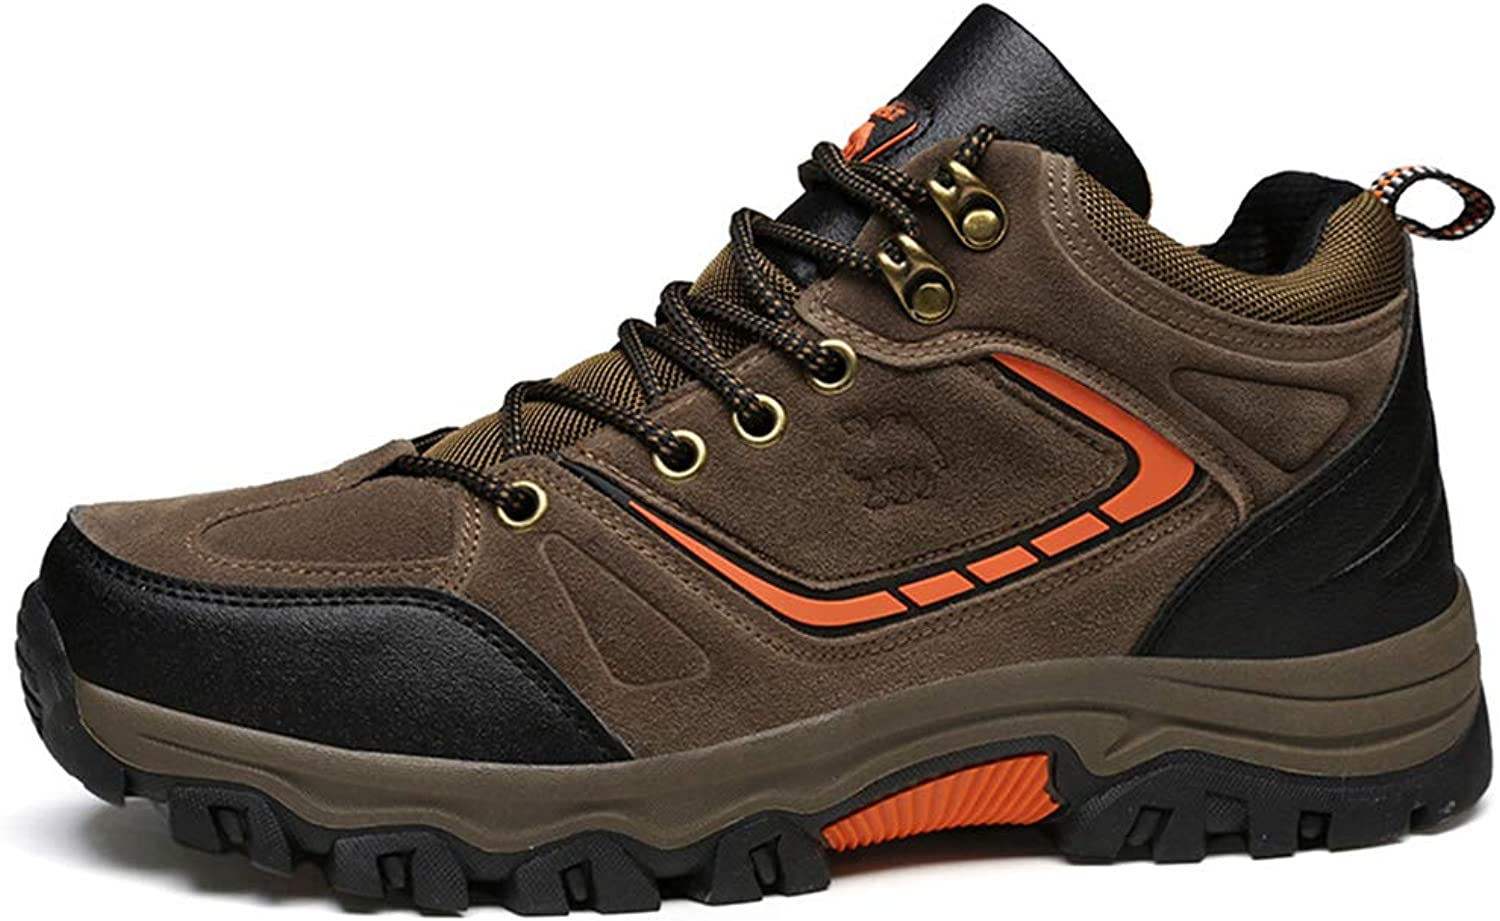 Men's shoes Fall Winter Non Slip Wear-Resistant Outdoor shoes Casual Tourism Hiking shoes Camping shoes,B,41